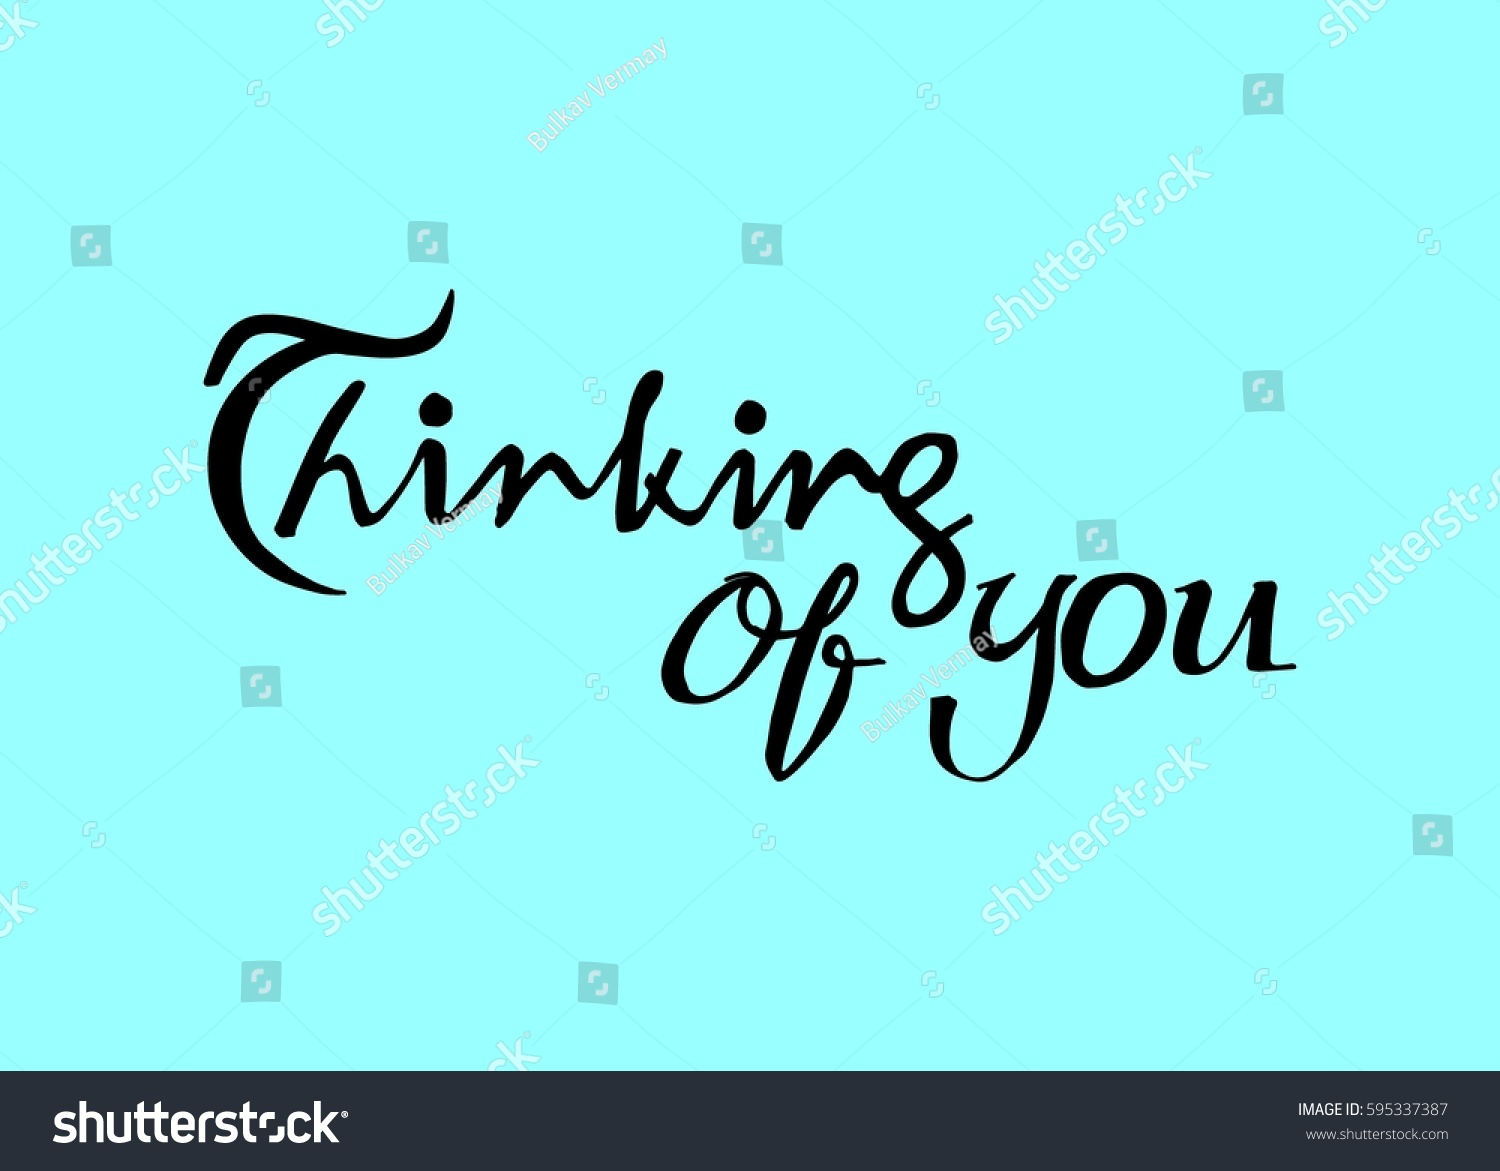 Thinking you hand lettered quote modern stock vector